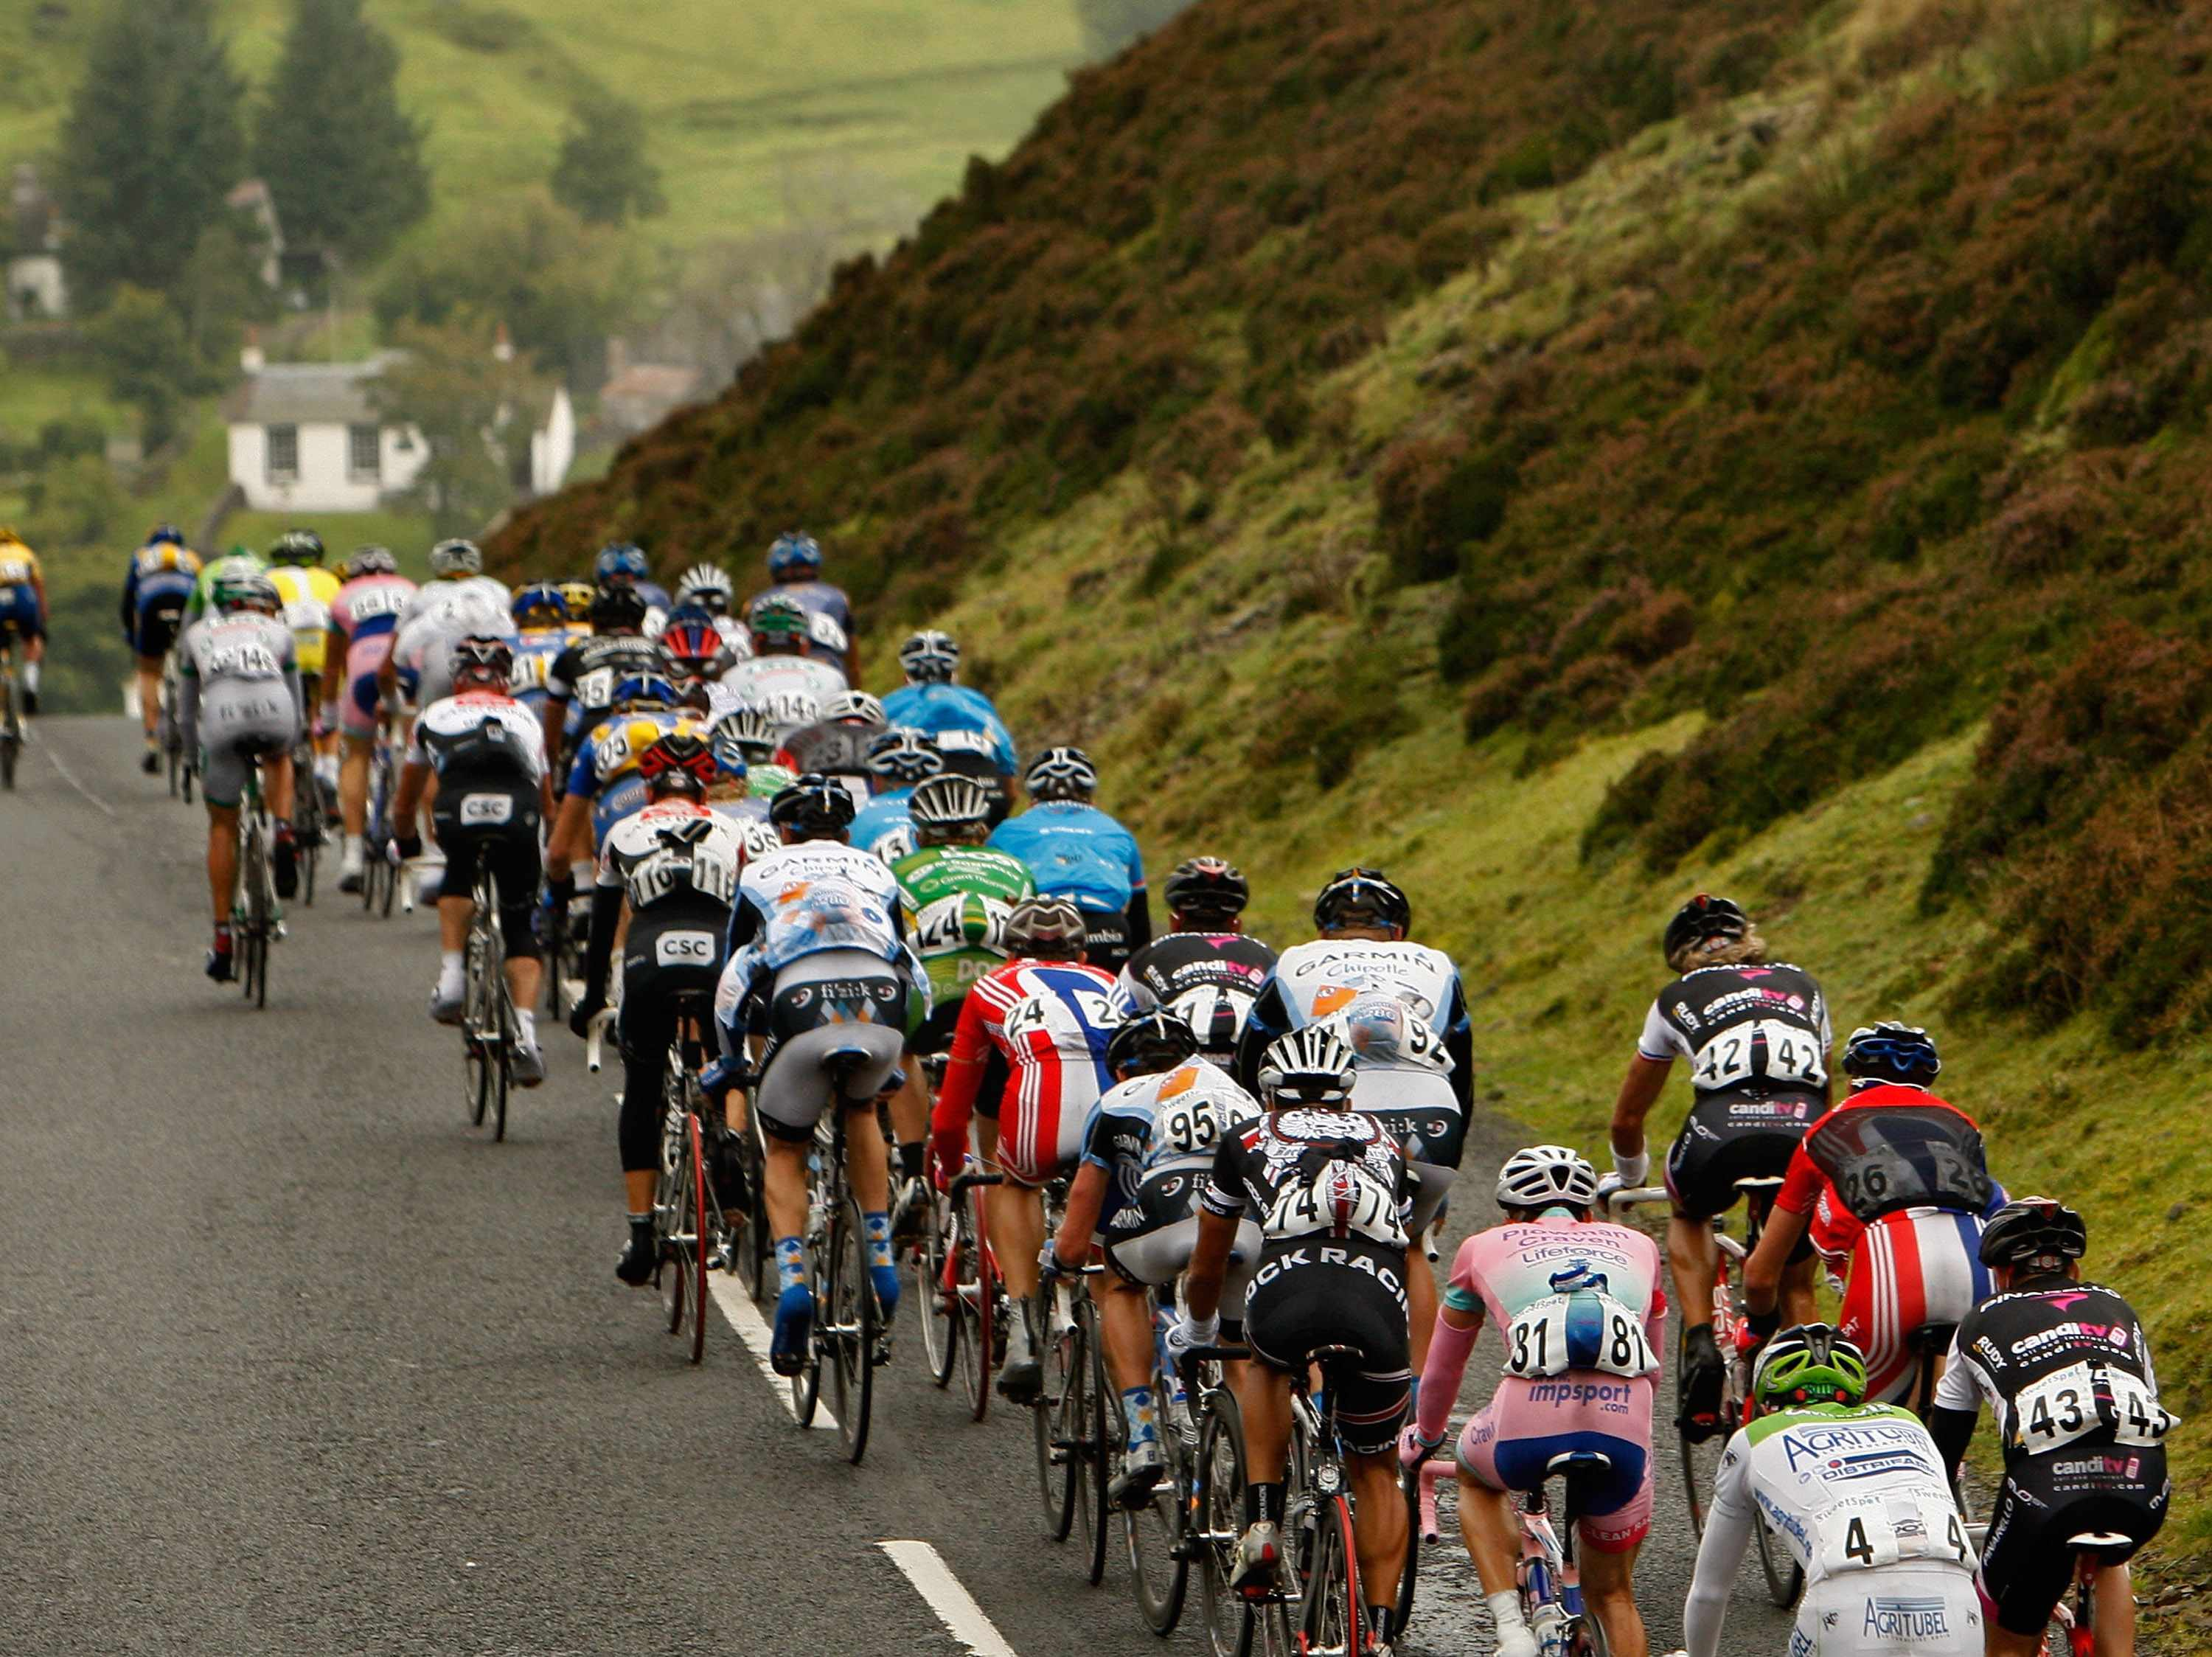 Participants in the annual Etape Caledonia get to emulate the pros and race on closed roads